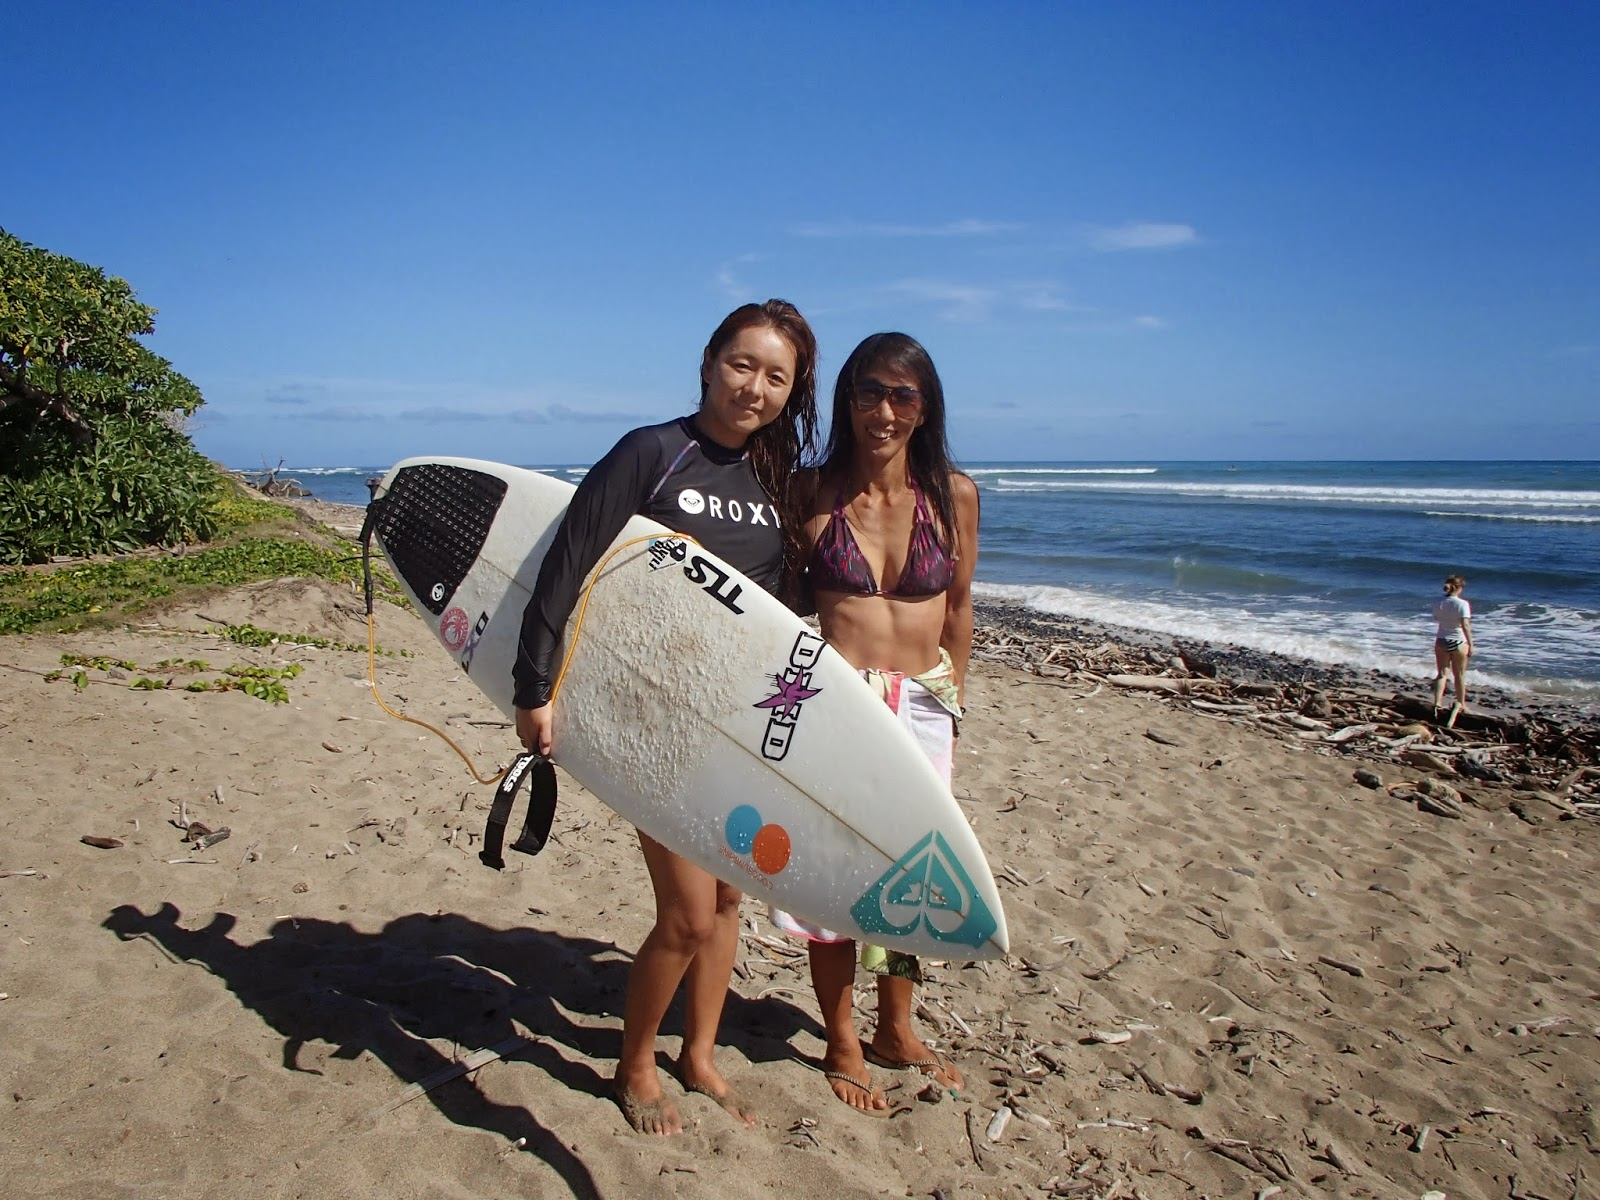 Windmail Diary: 11月6日 Fun session at Sandpiles